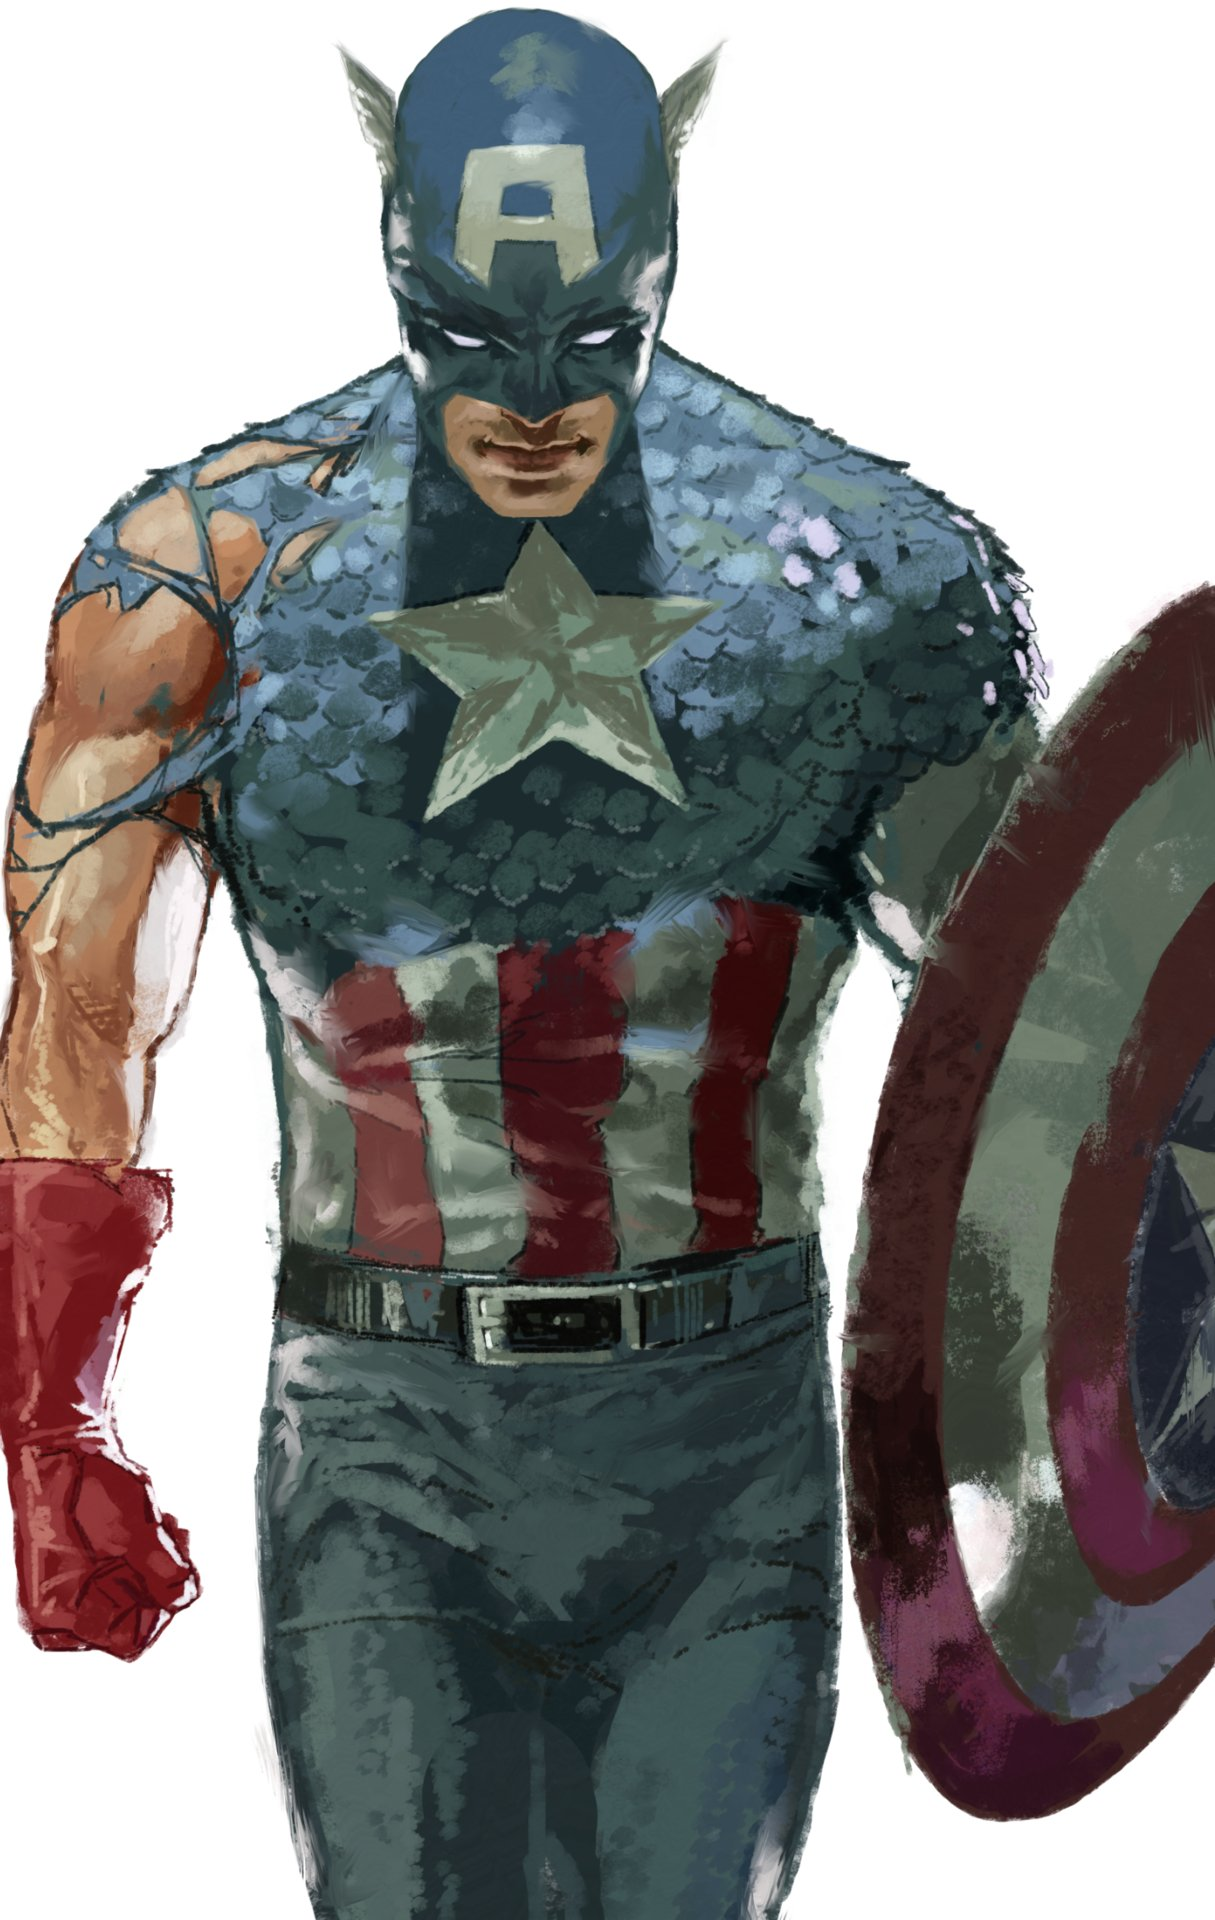 dave-seguin-artwork-captain-america